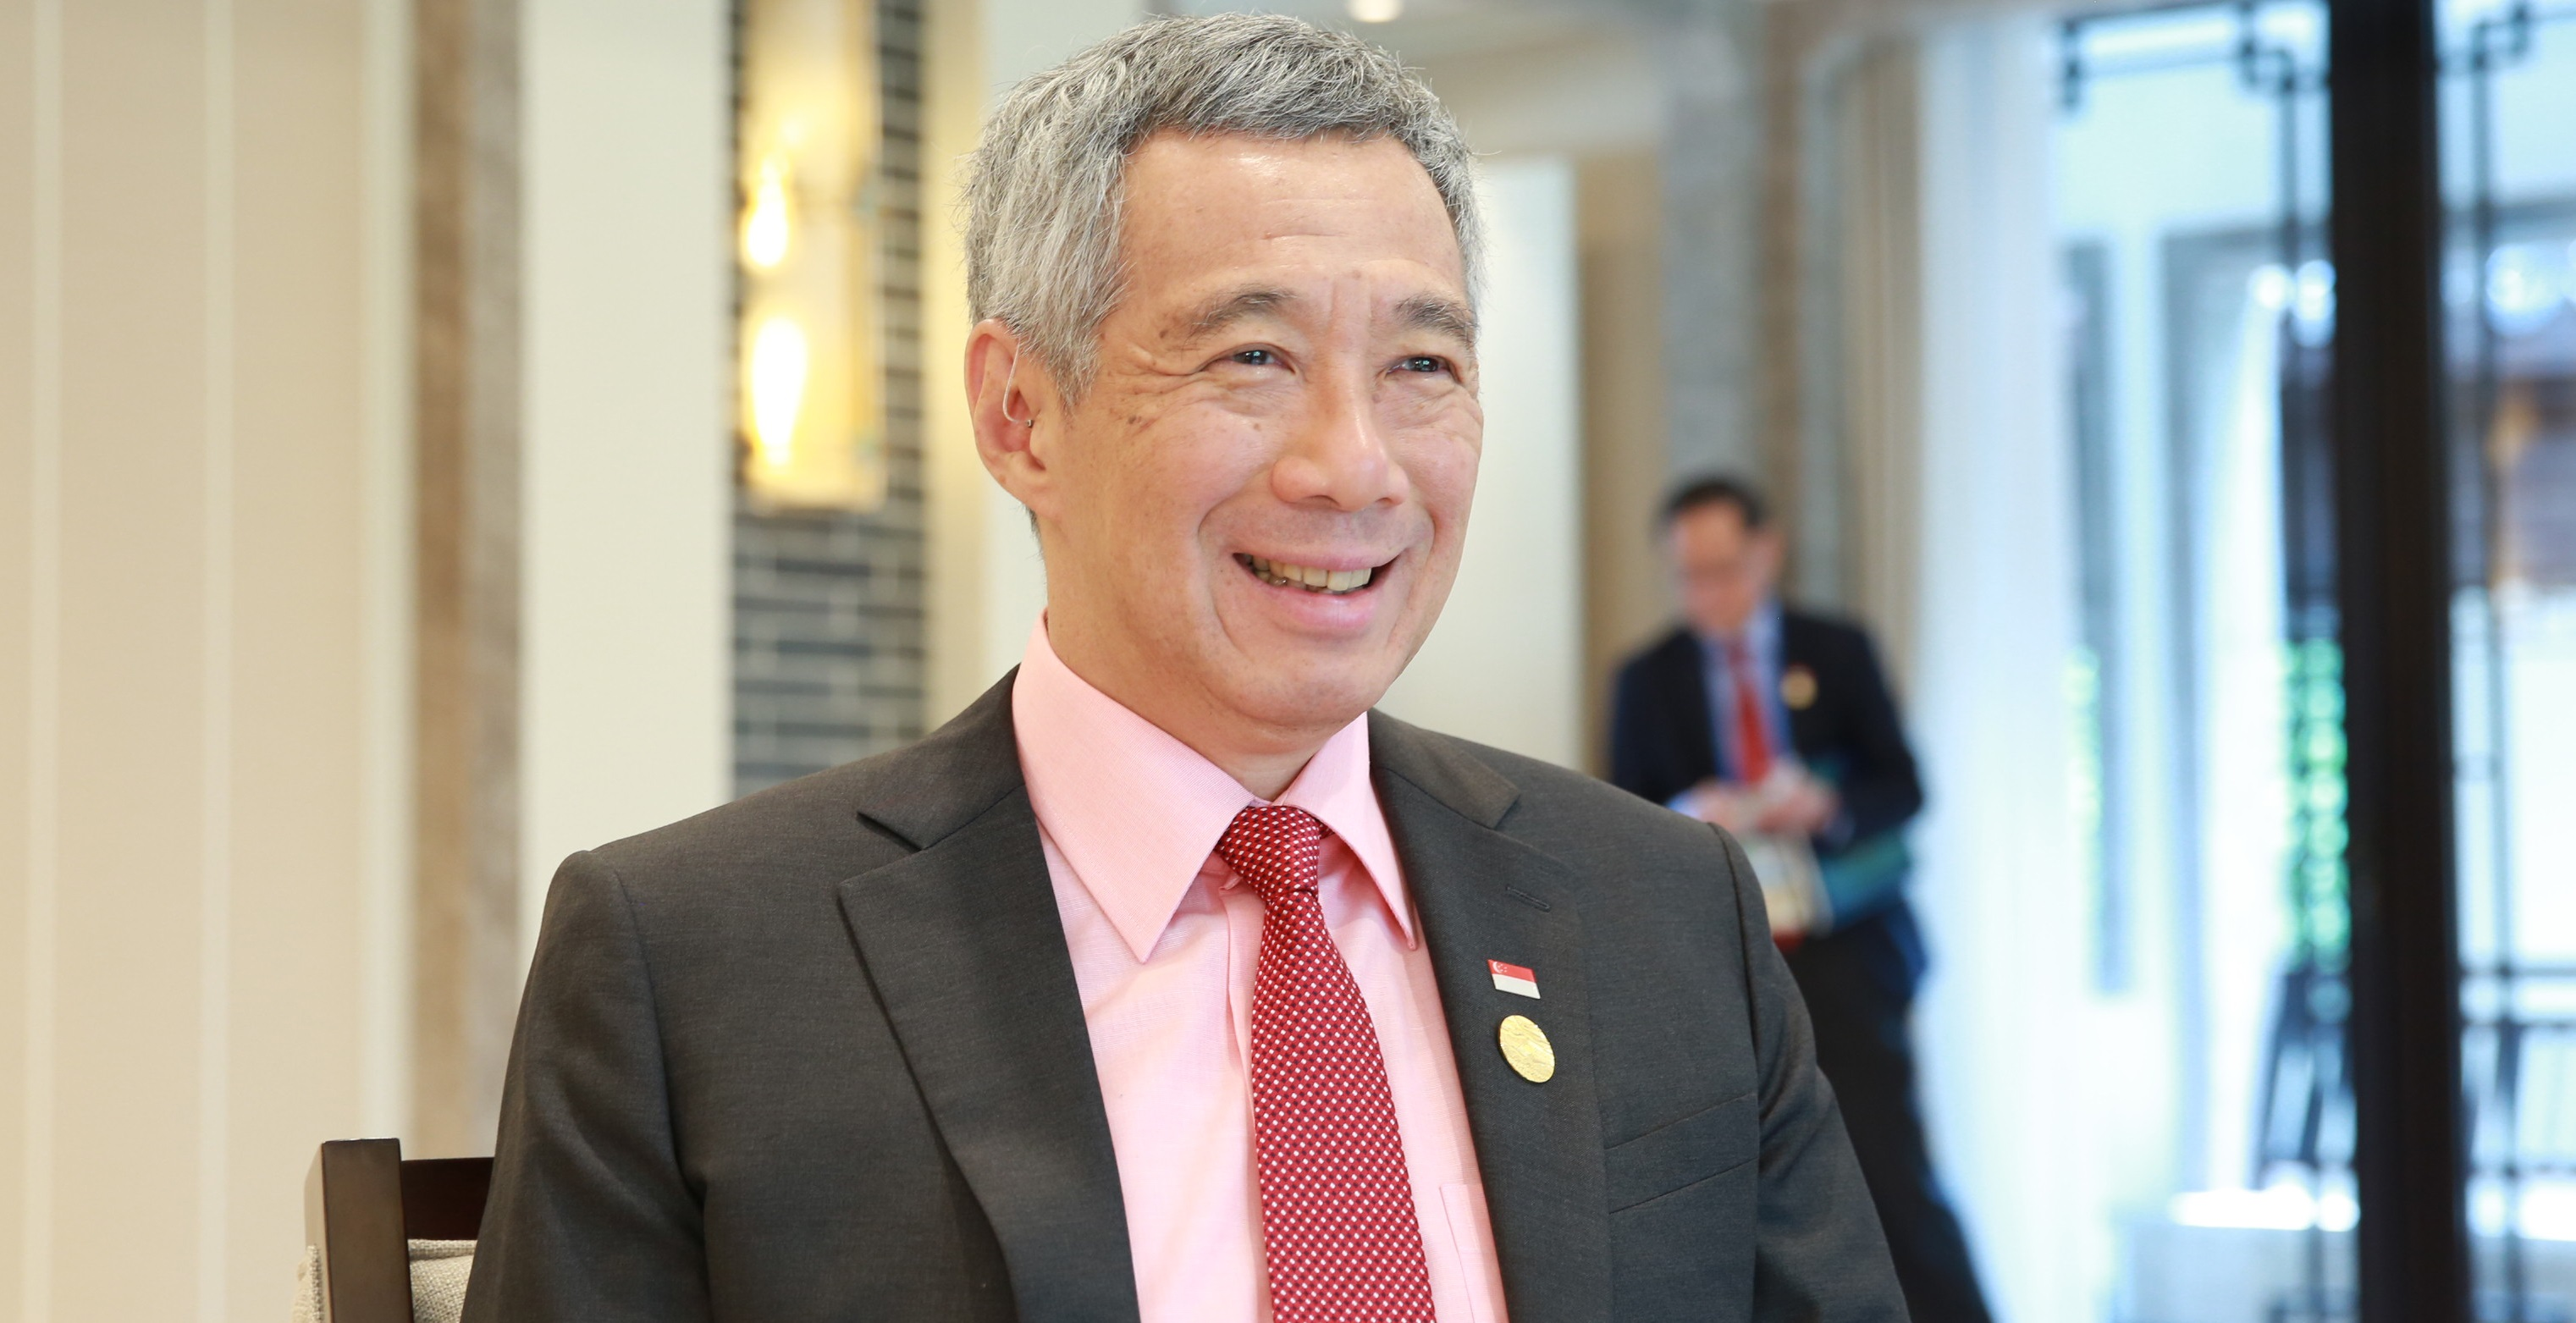 Prime Minister of Singapore Lee Hsien Loong has termed Budget 2018 as strategic financial plan for building better future.